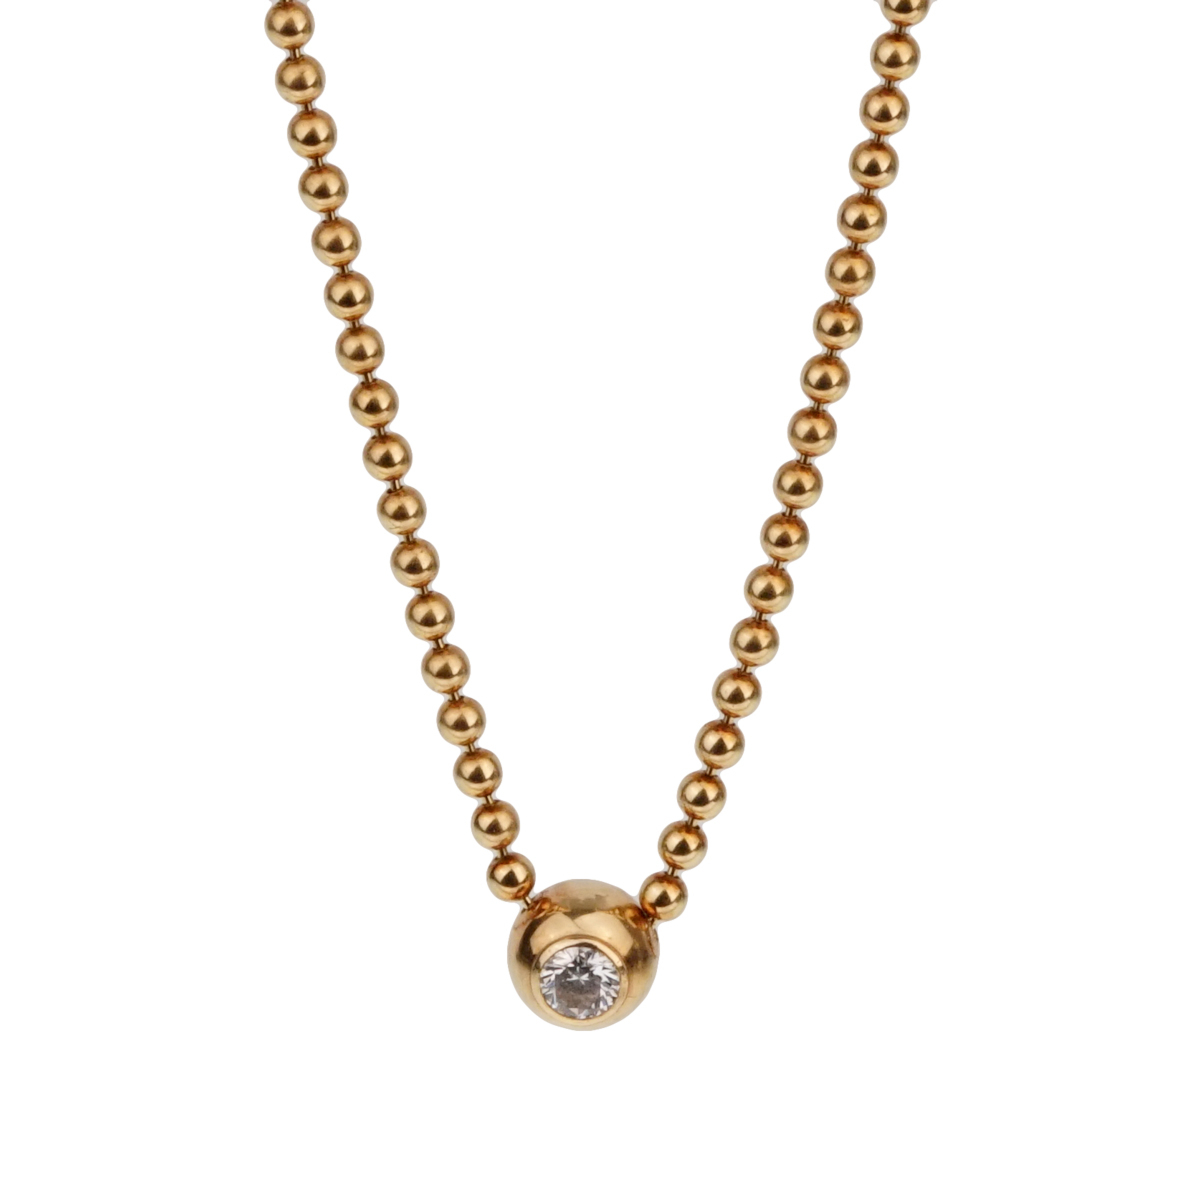 Cartier Vintage Solitaire Diamond Gold Pendant Necklace - Cartier Jewelry